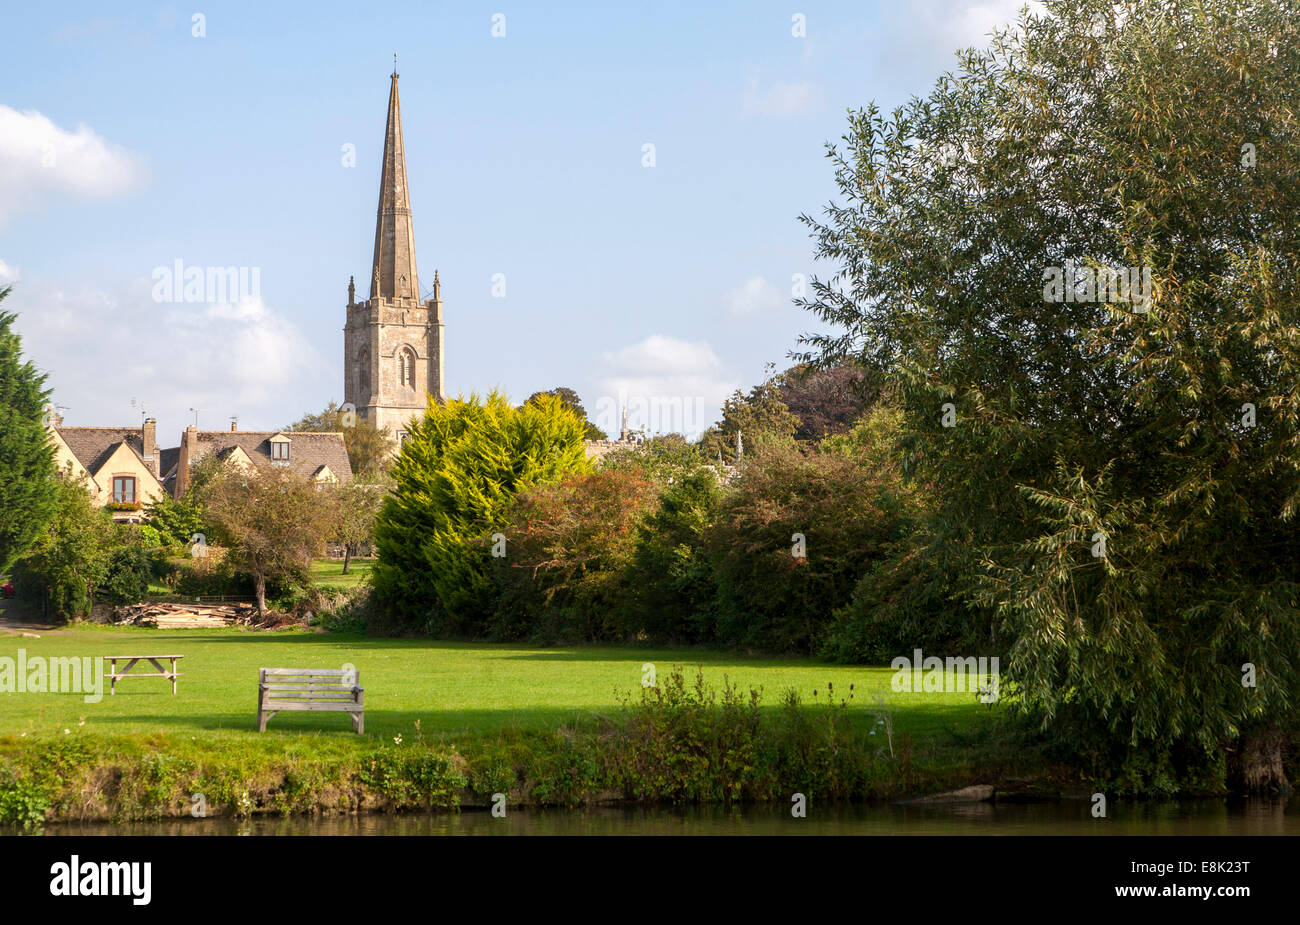 St Lawrence Church, Lechlade on Thames, Gloucestershire, England, UK - Stock Image